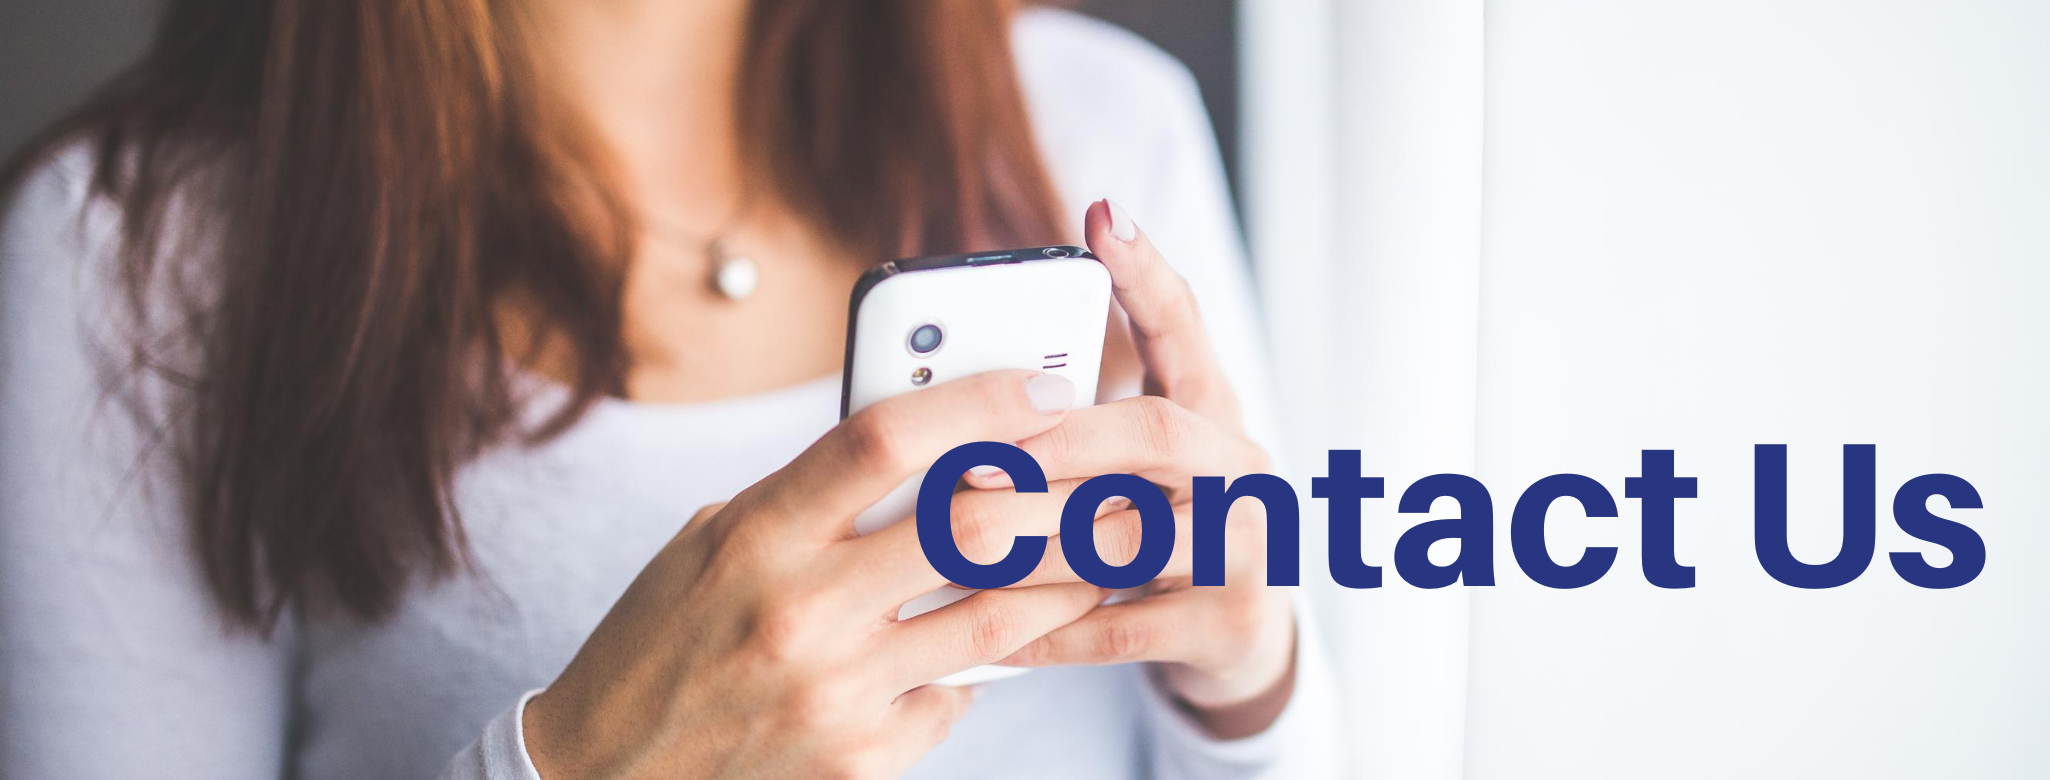 Contact Us page header